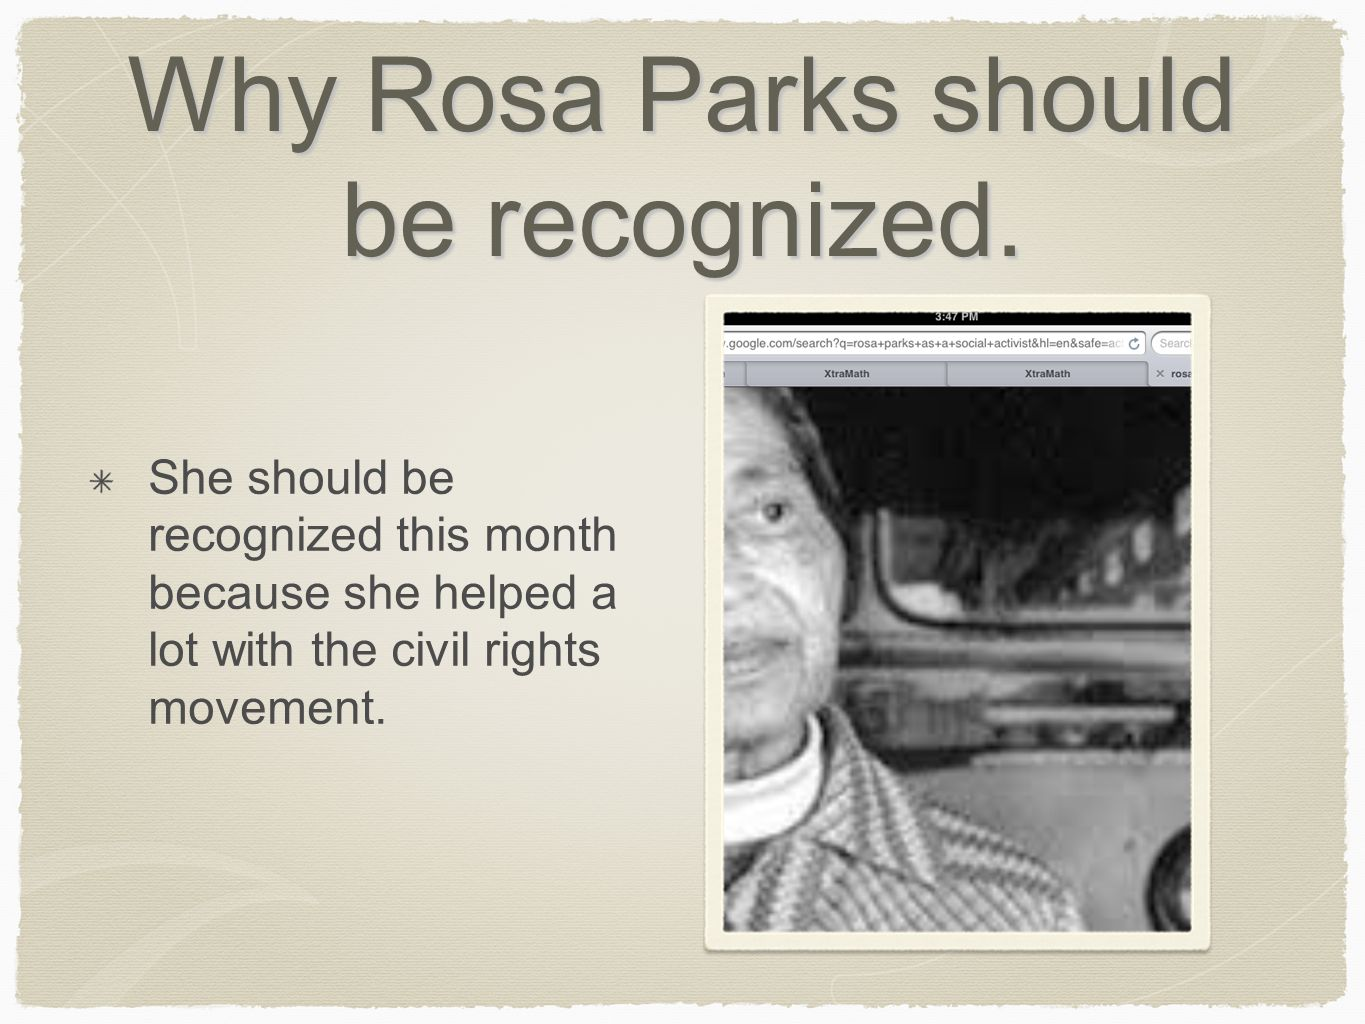 Why Rosa Parks should be recognized. She should be recognized this month because she helped a lot with the civil rights movement.